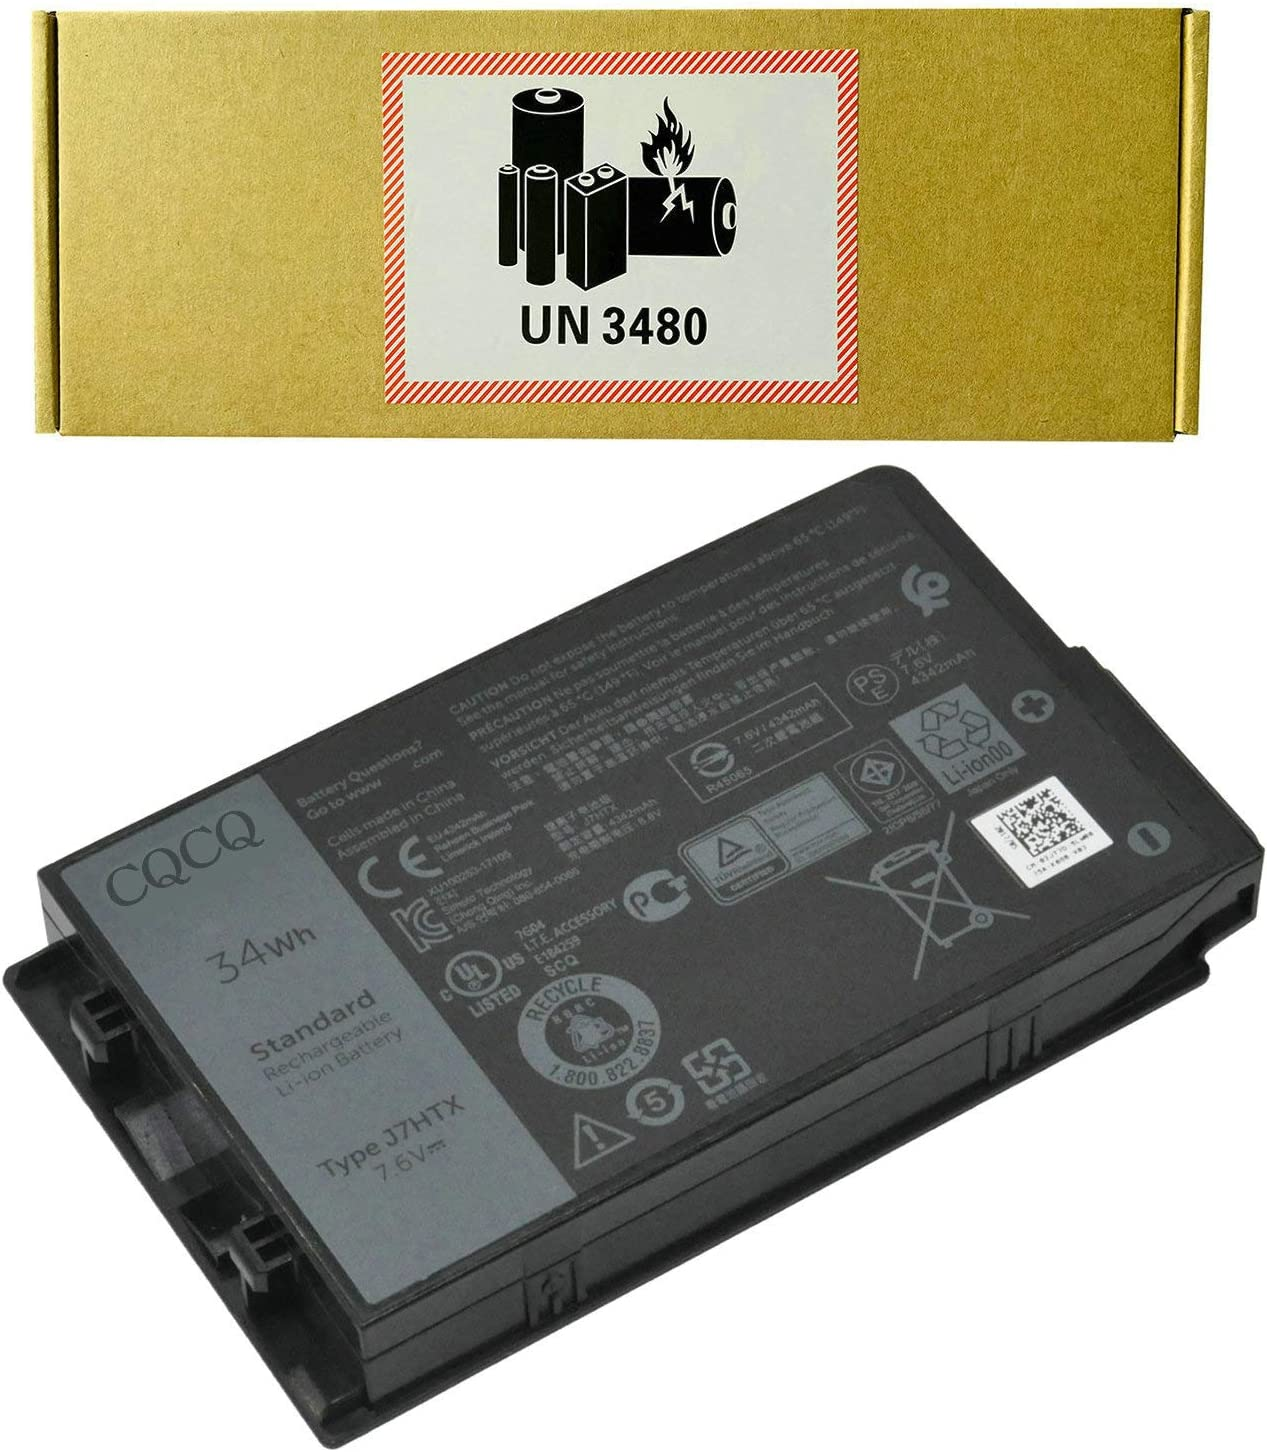 CQCQ J7HTX 7XNTR Battery for for Dell Latitude 7202 7212 7220 Rugged Extreme Tablet Series 0FH8RW FH8RW 27JT0 (7.6V 34Wh/4342mAh)